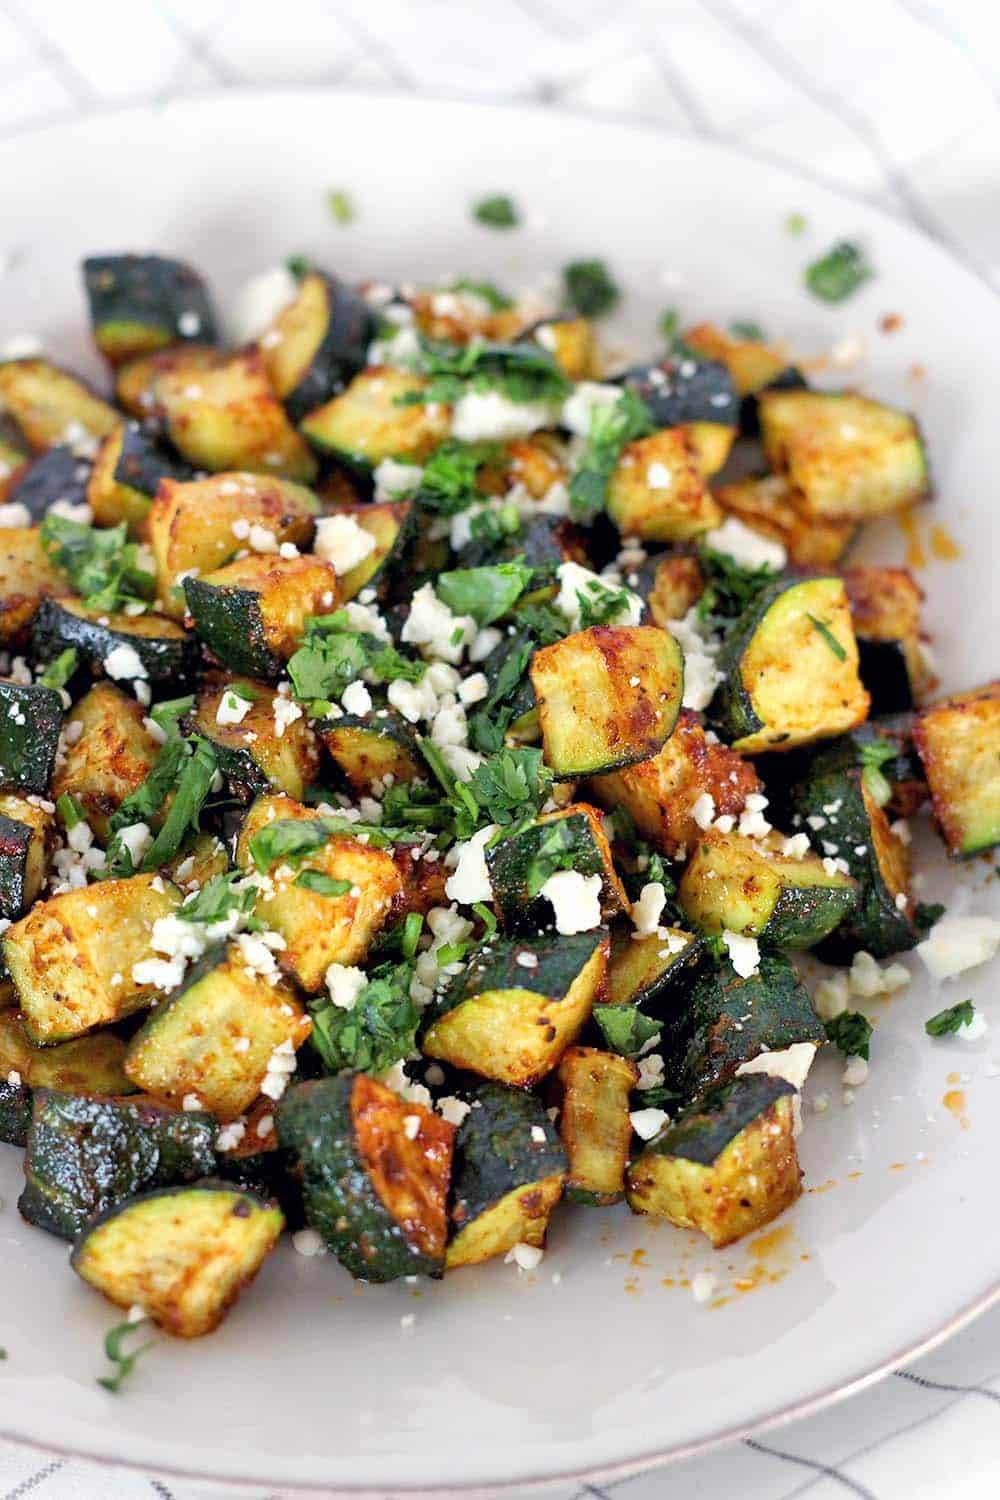 Vegetable Side Dishes  15 Easy Low Carb Ve able Recipes Primal Edge Health